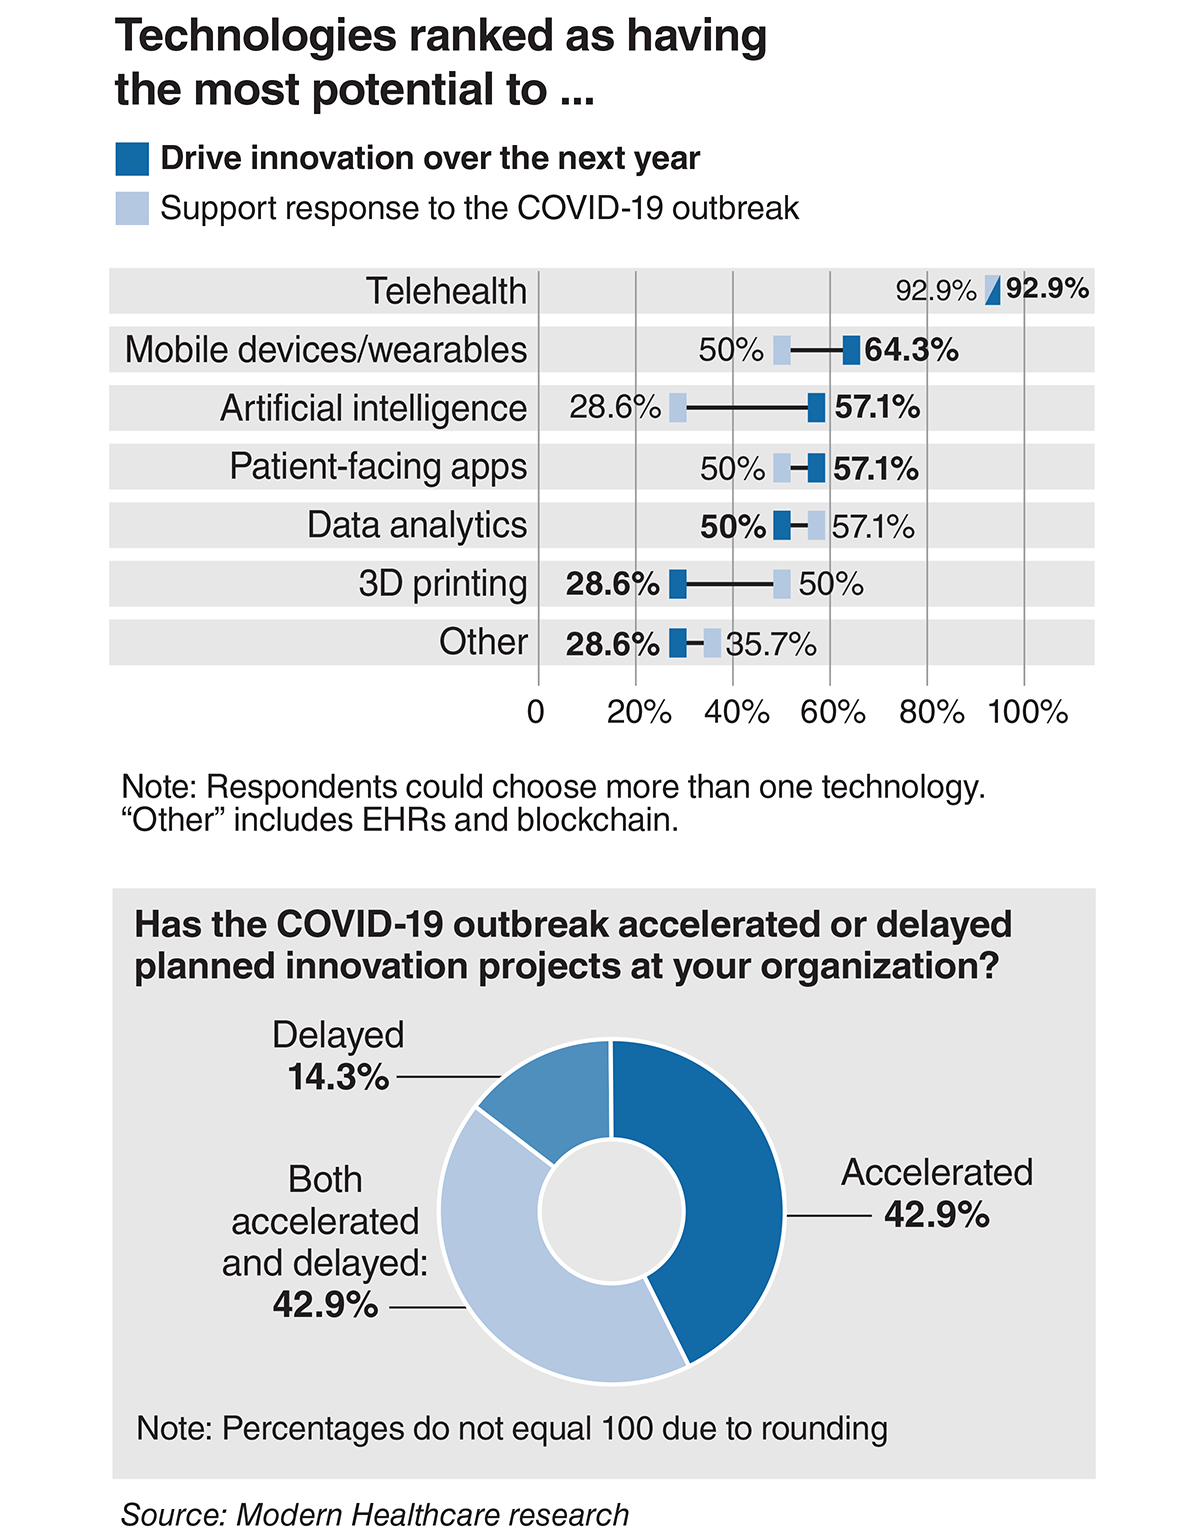 Technologies ranked as having the most potential to drive innovation and support response to COVID-19 outbreak